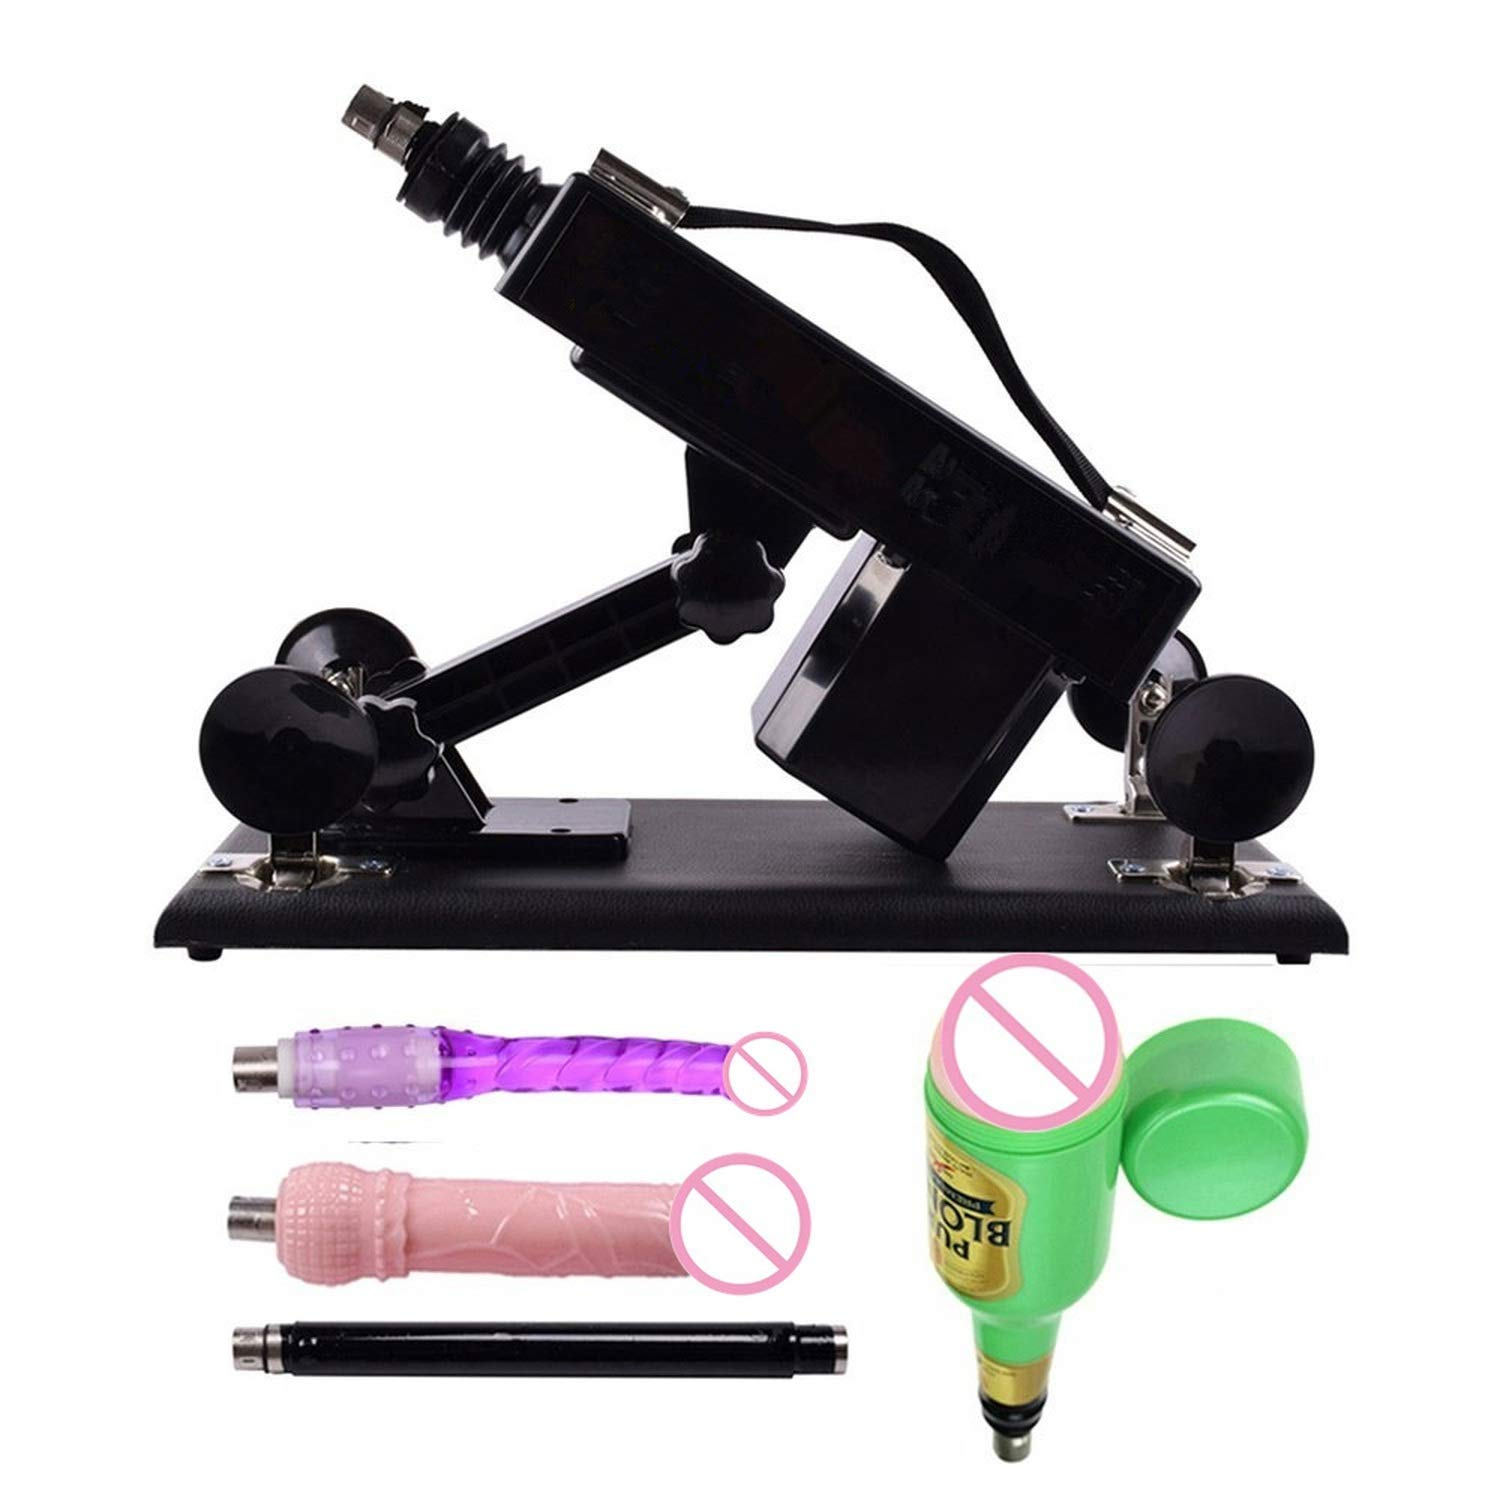 FUYKIN Tshirt Vibrator Six Machine Set for Men and Women Automatic Retractable Thrusting Speed Machine with Cup and Adlut Six Toy high-Quality